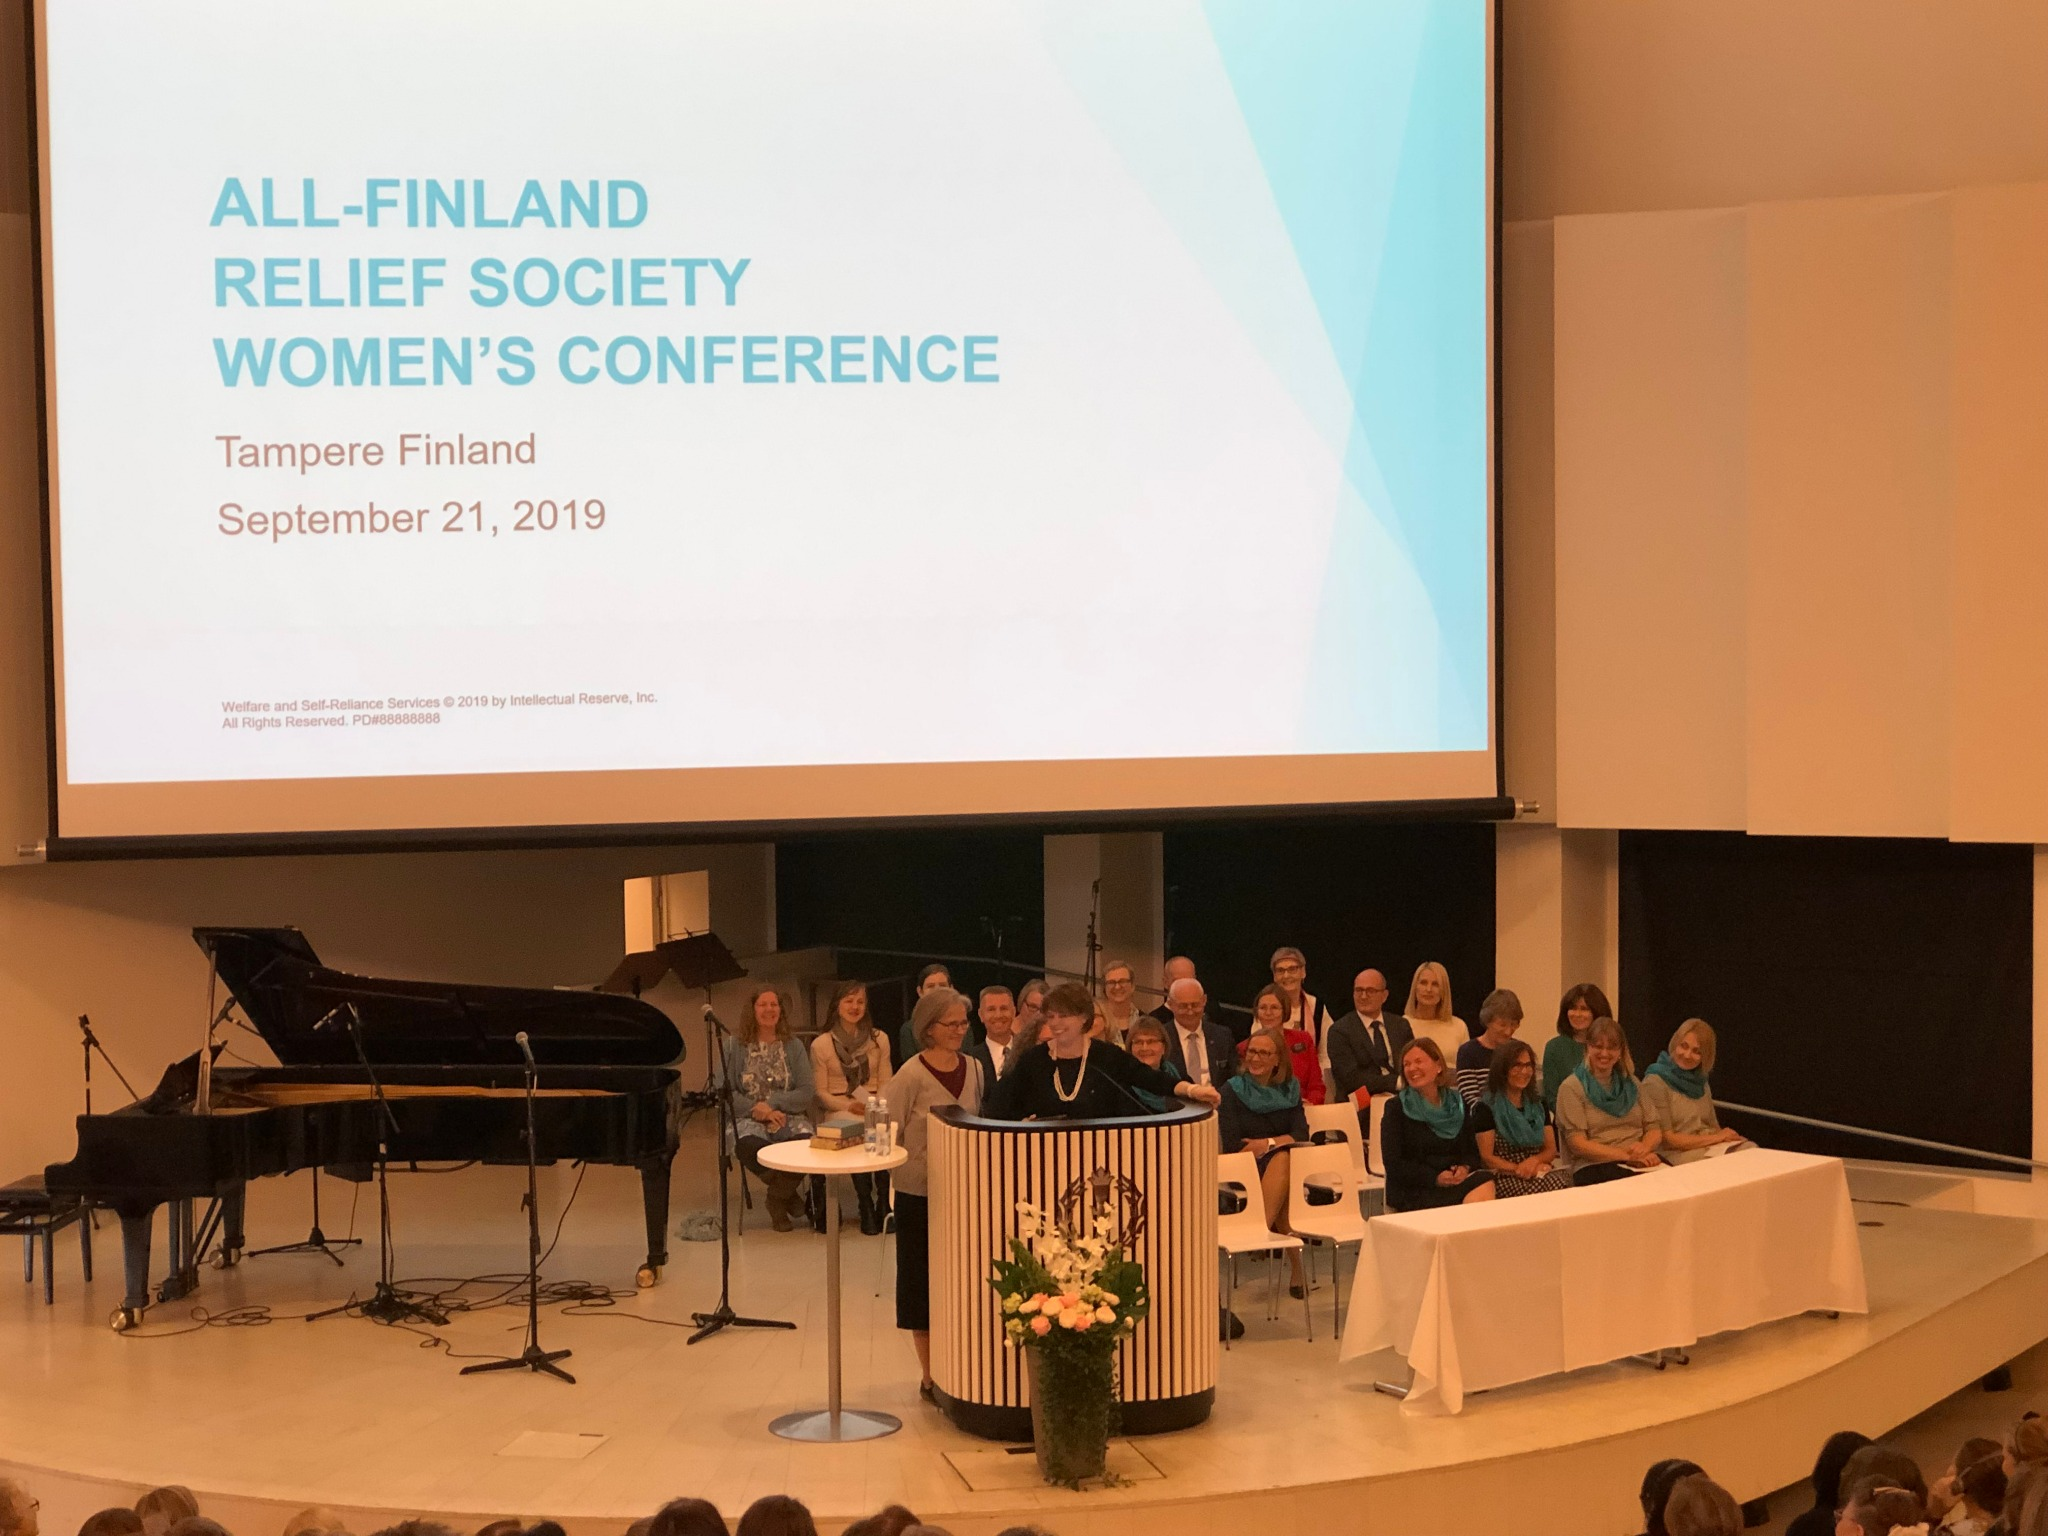 Sister Sharon Eubank, president of Latter-day Saint Charities, gives a keynote address at a national women's conference in Tampere, Finland, Saturday, September 21, 2019.